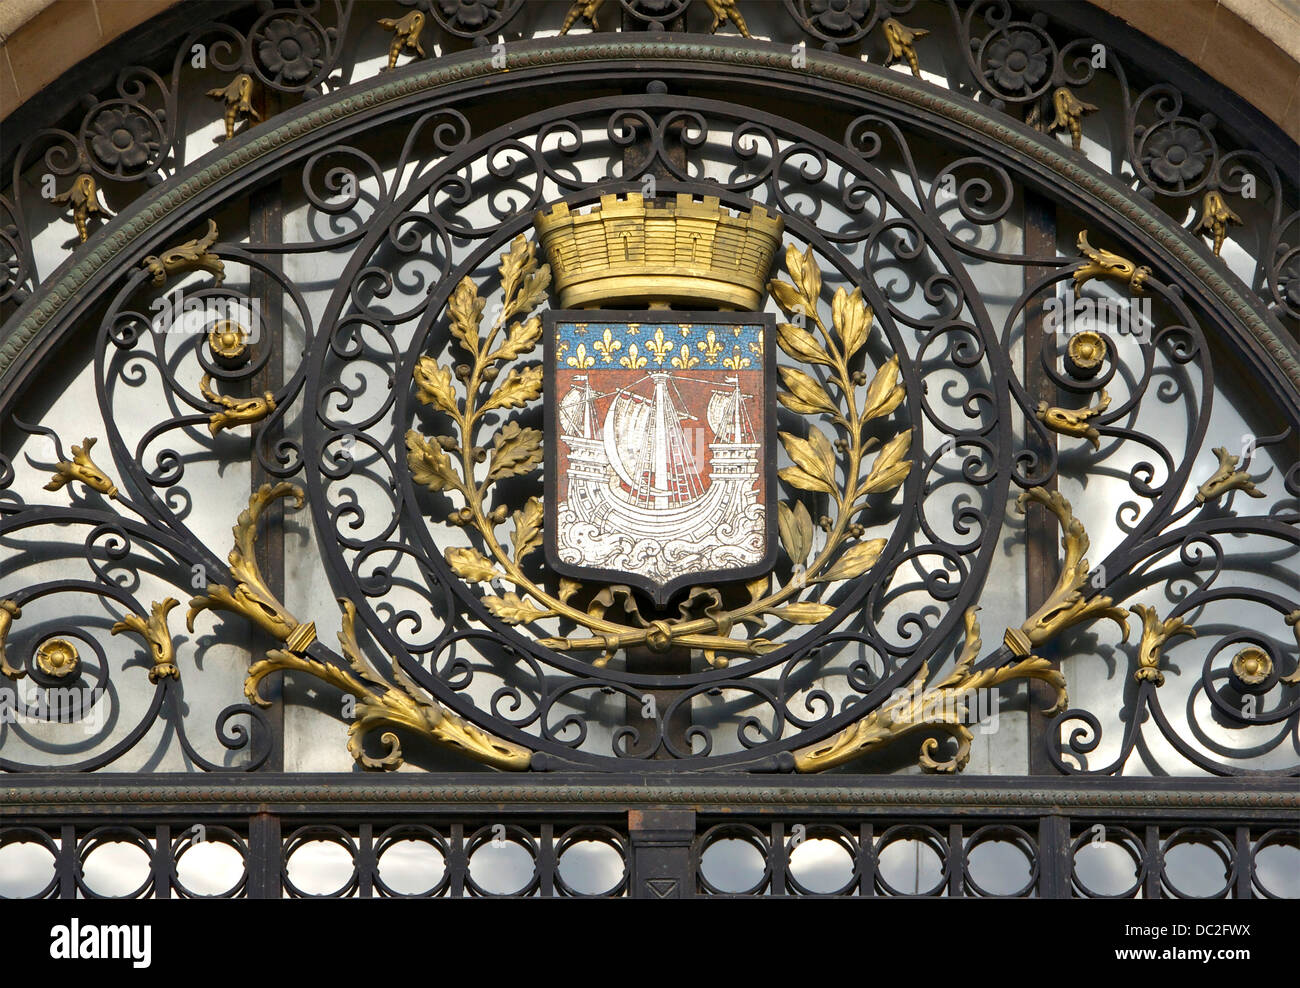 The CoA of Paris, above one of the lateral entrances of the City Hall. - Stock Image